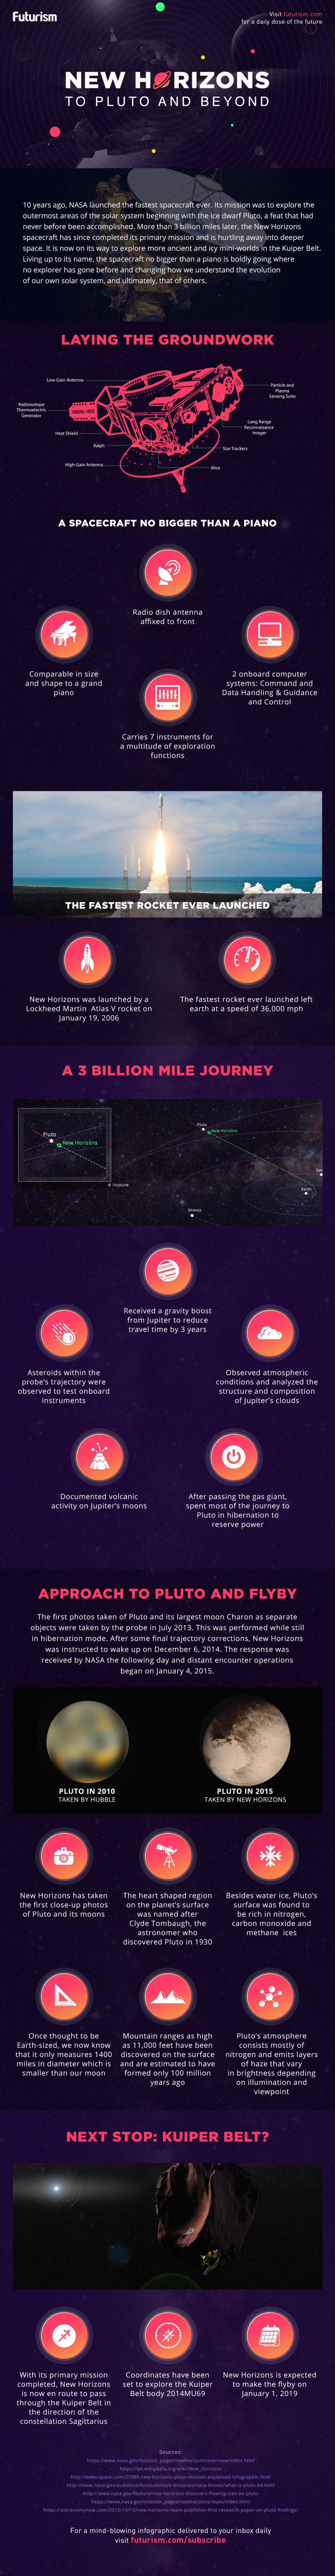 To Pluto and Beyond: The Victorious Mission of Spacecraft New Horizons - Infographic